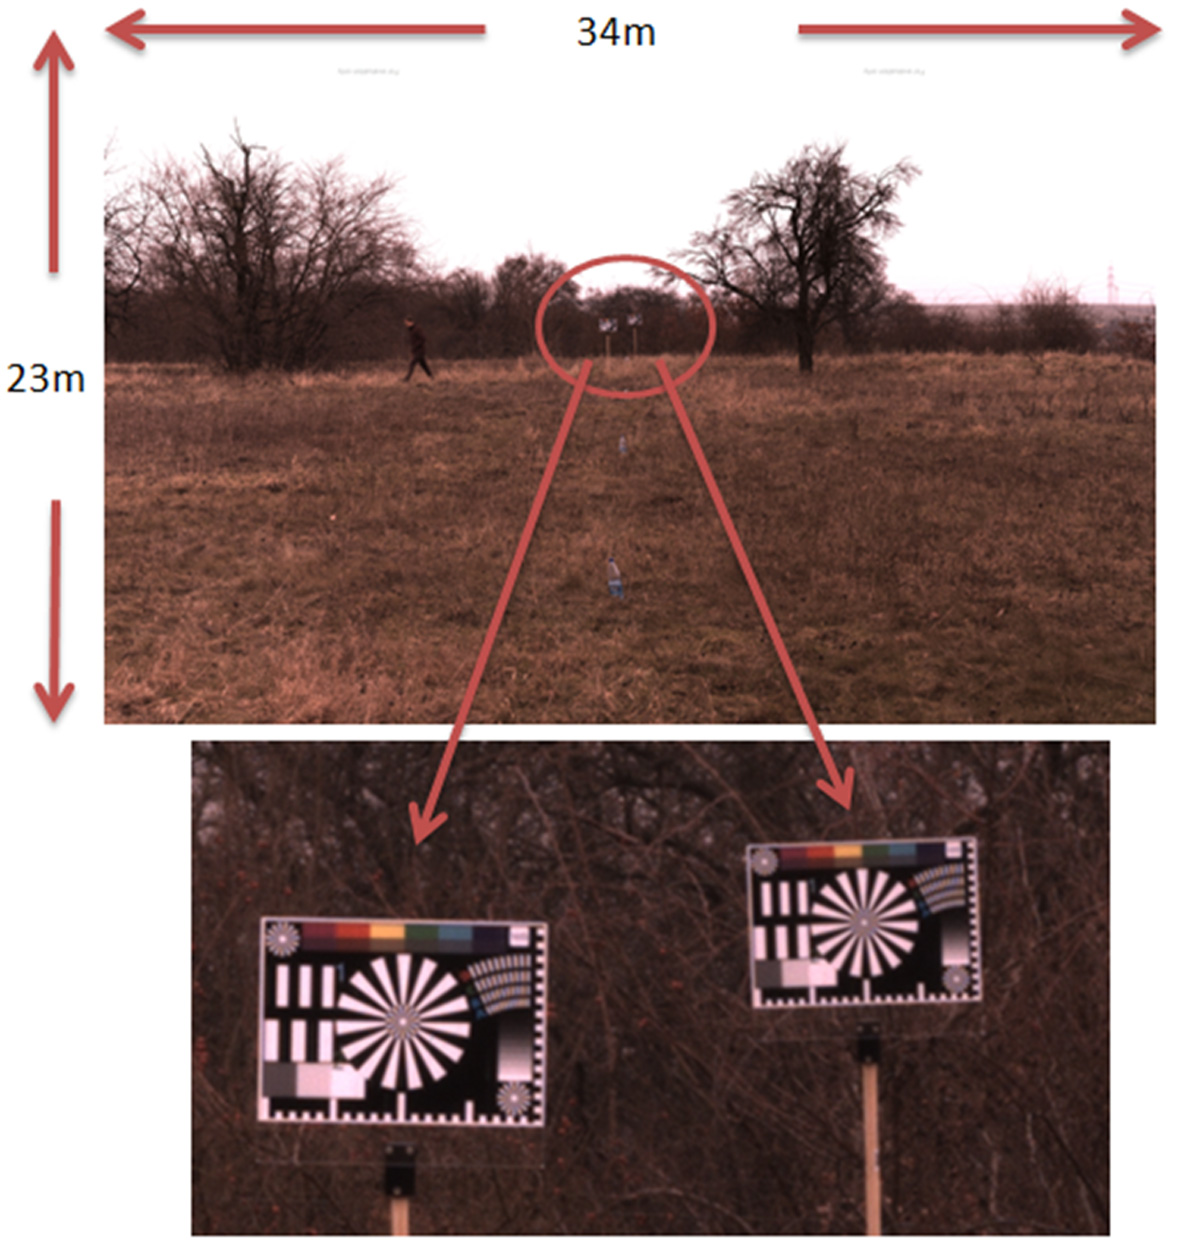 Figure 7: Two Vds test charts placed at a distance of 40 meters and 50 meters, resp. (a) and captured by a K71 (b). Both show finest details.